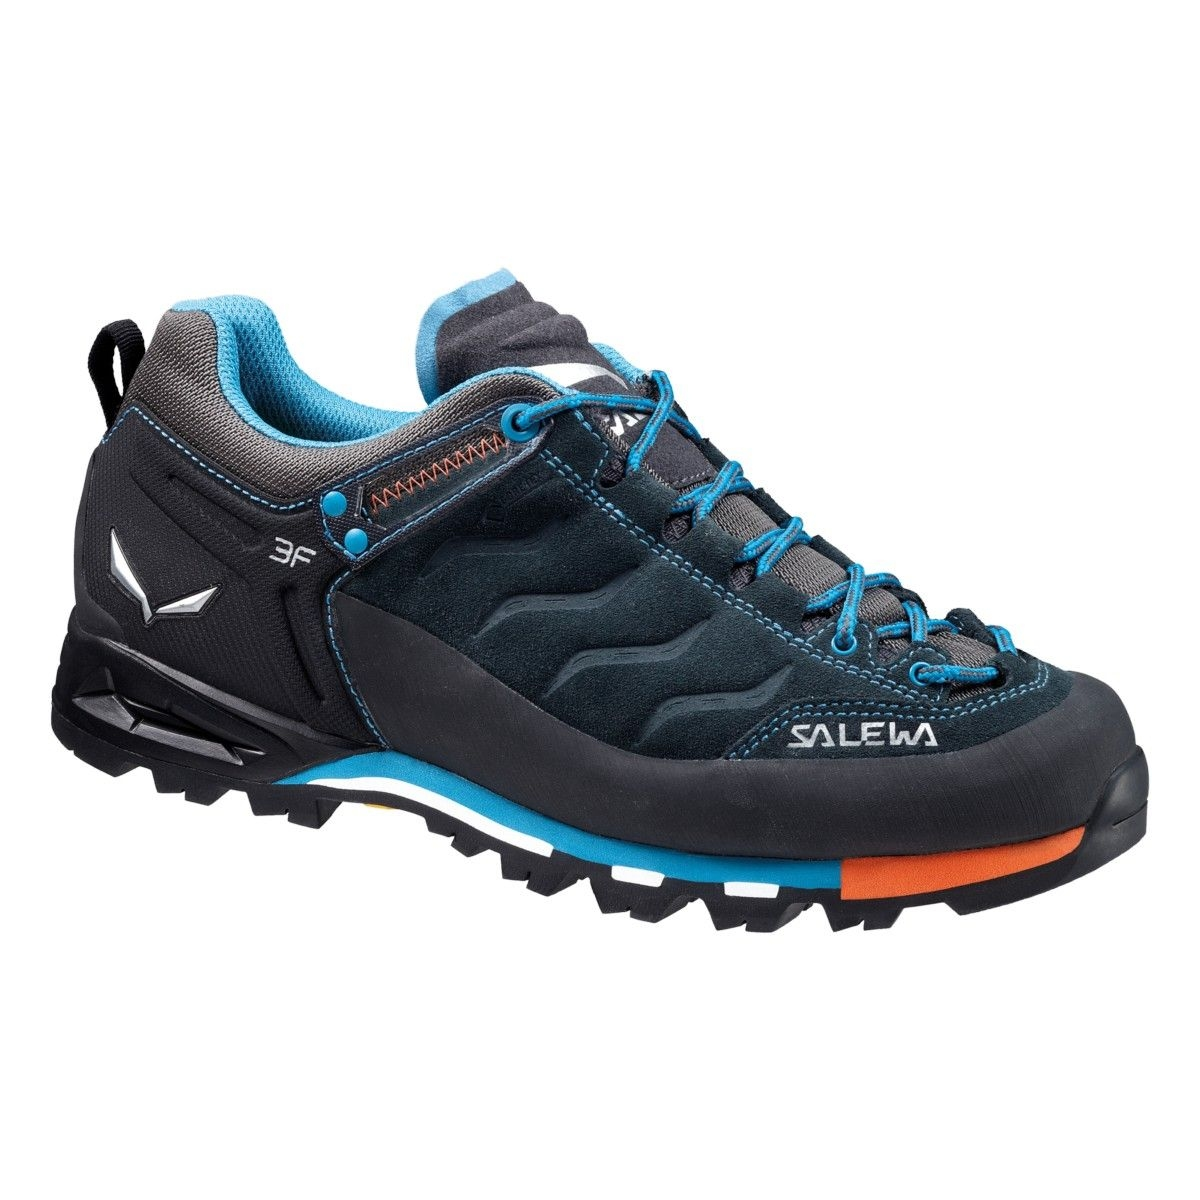 Buty damskie Salewa Mountain Trainer GTX Trekkingowe